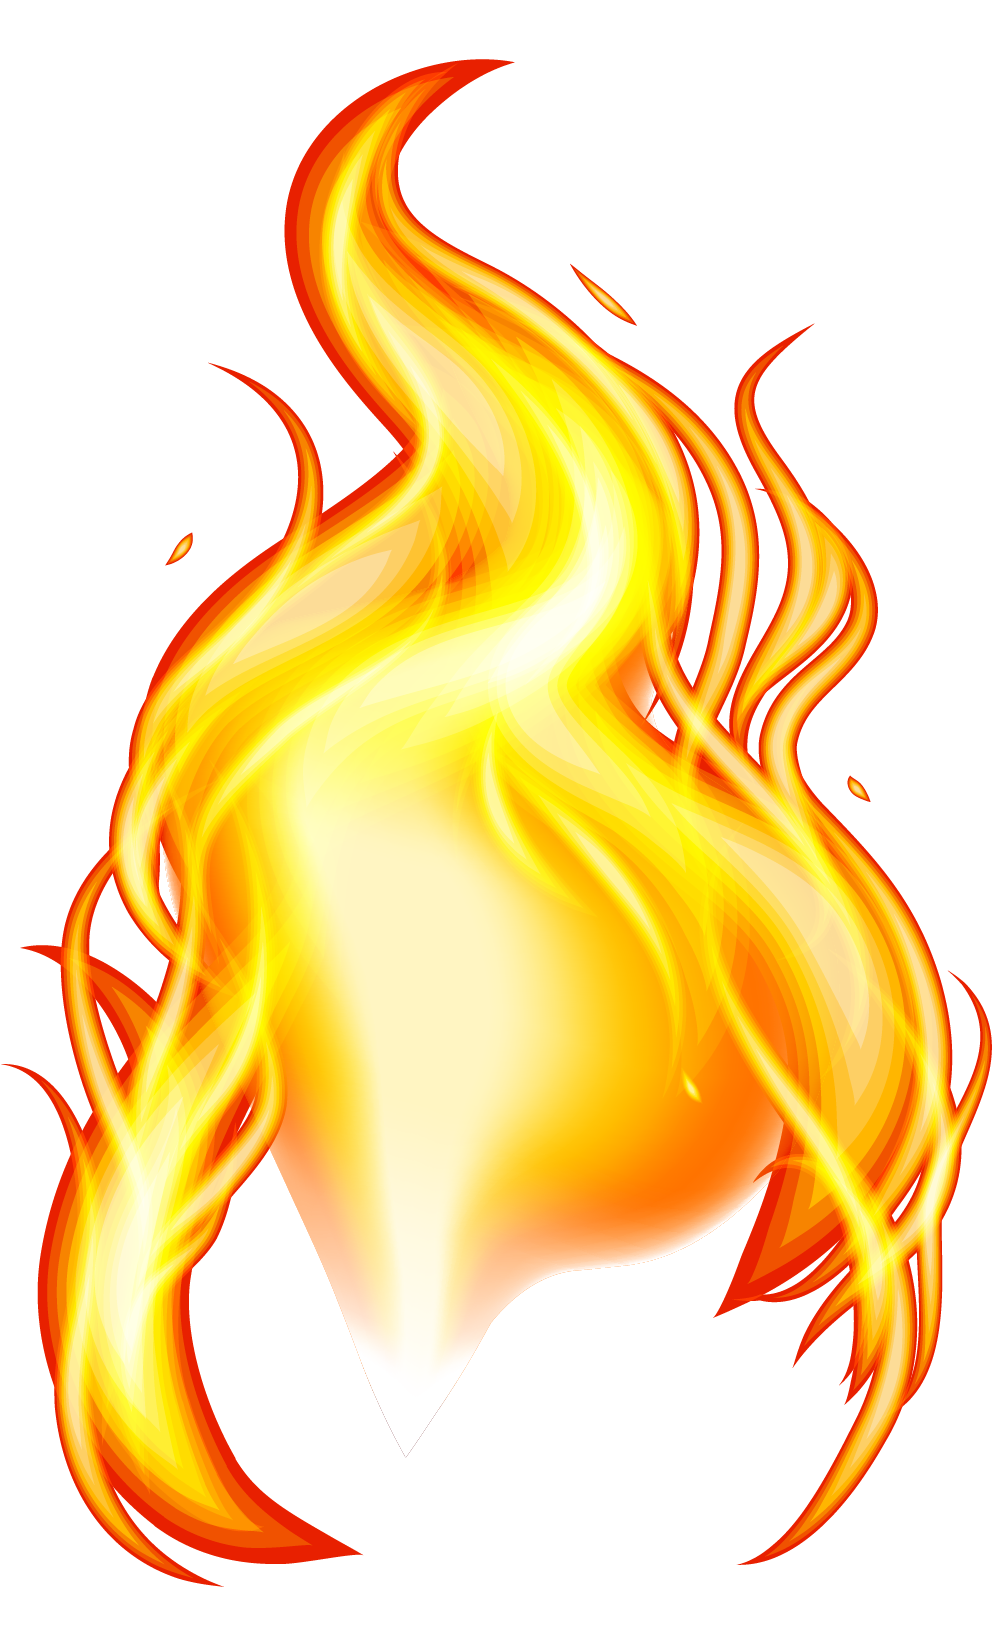 Fire effect png. Yellow flame element transprent